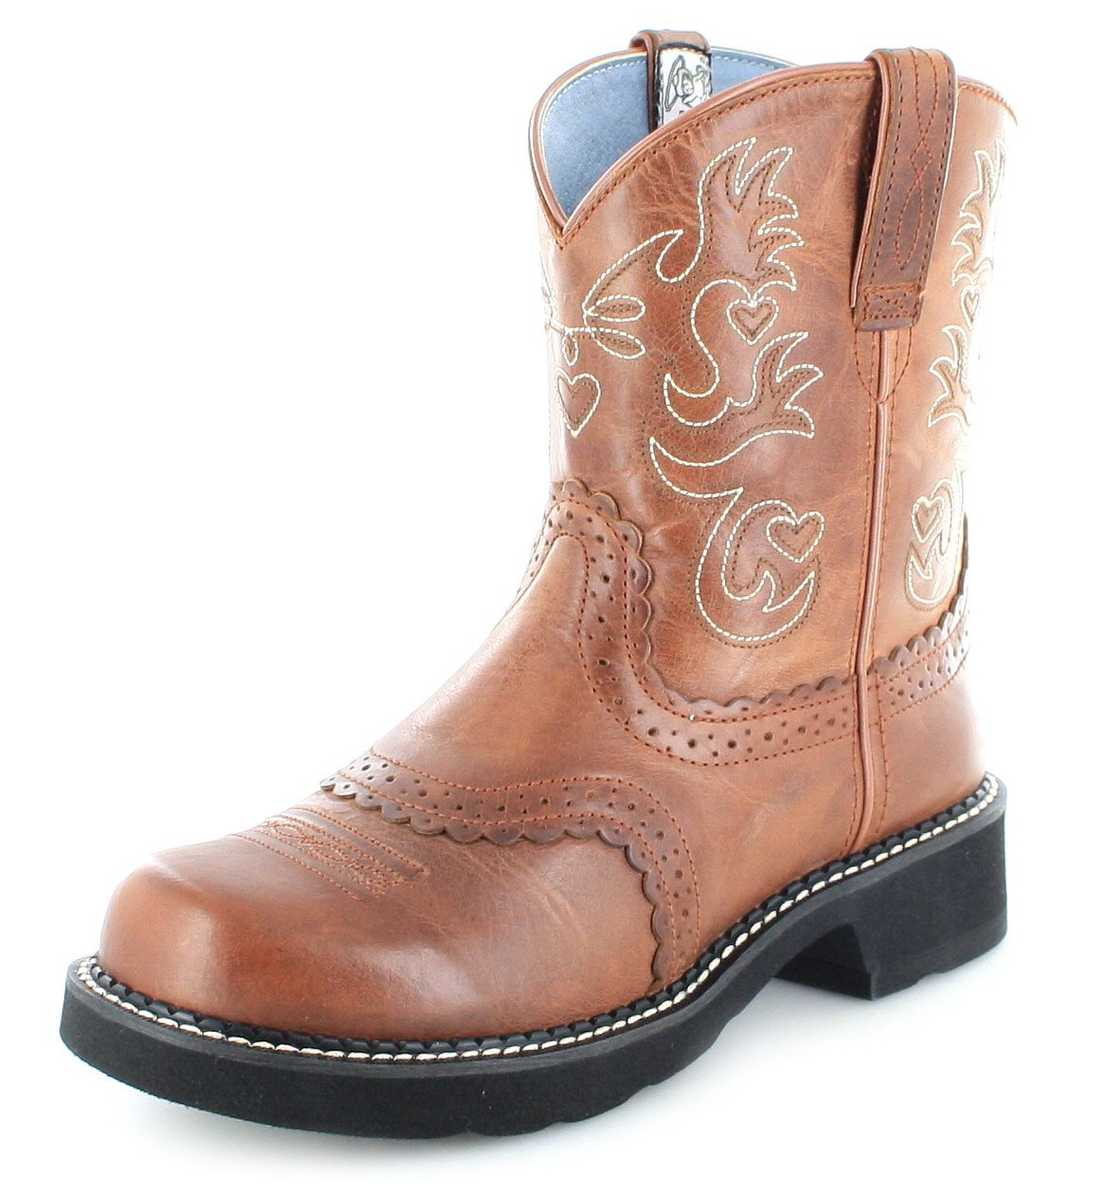 Ariat FATBABY SADDLE 0860 Russet Western riding boot - brown